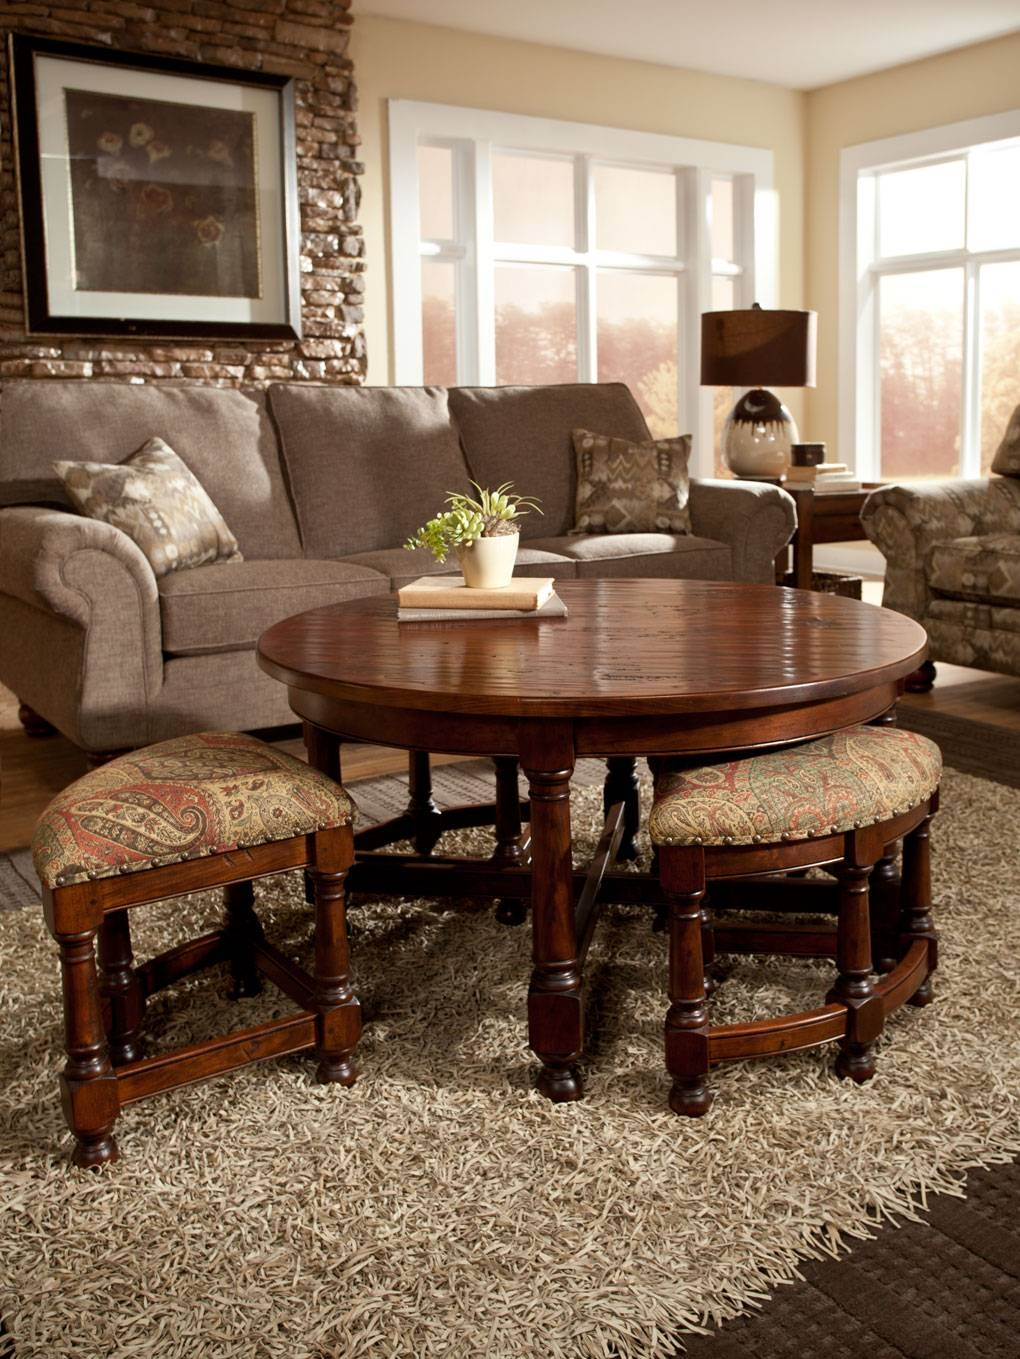 Mackenzie-Dow pertaining to Coffee Tables With Nesting Stools (Image 26 of 30)